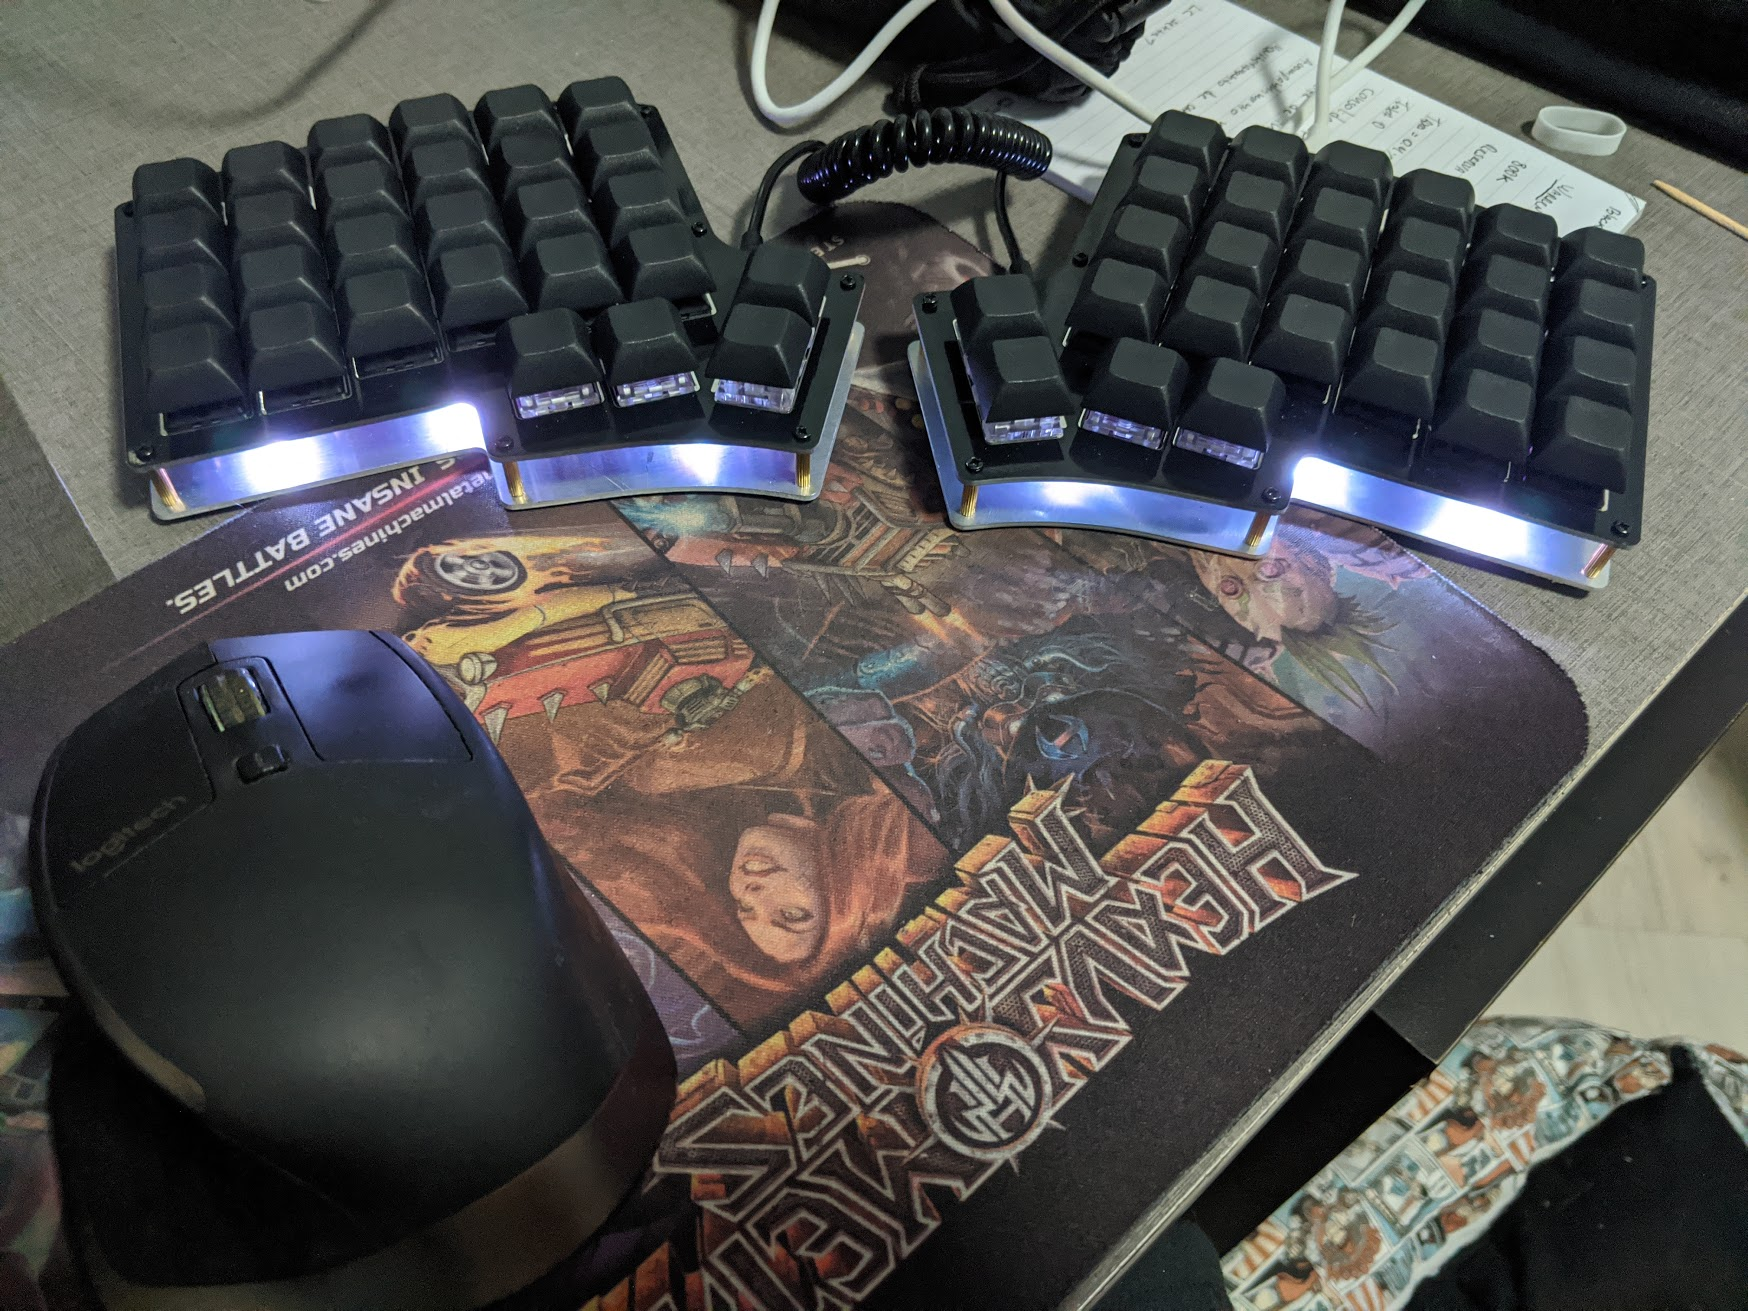 The keyboard with a blue/white LED lighting